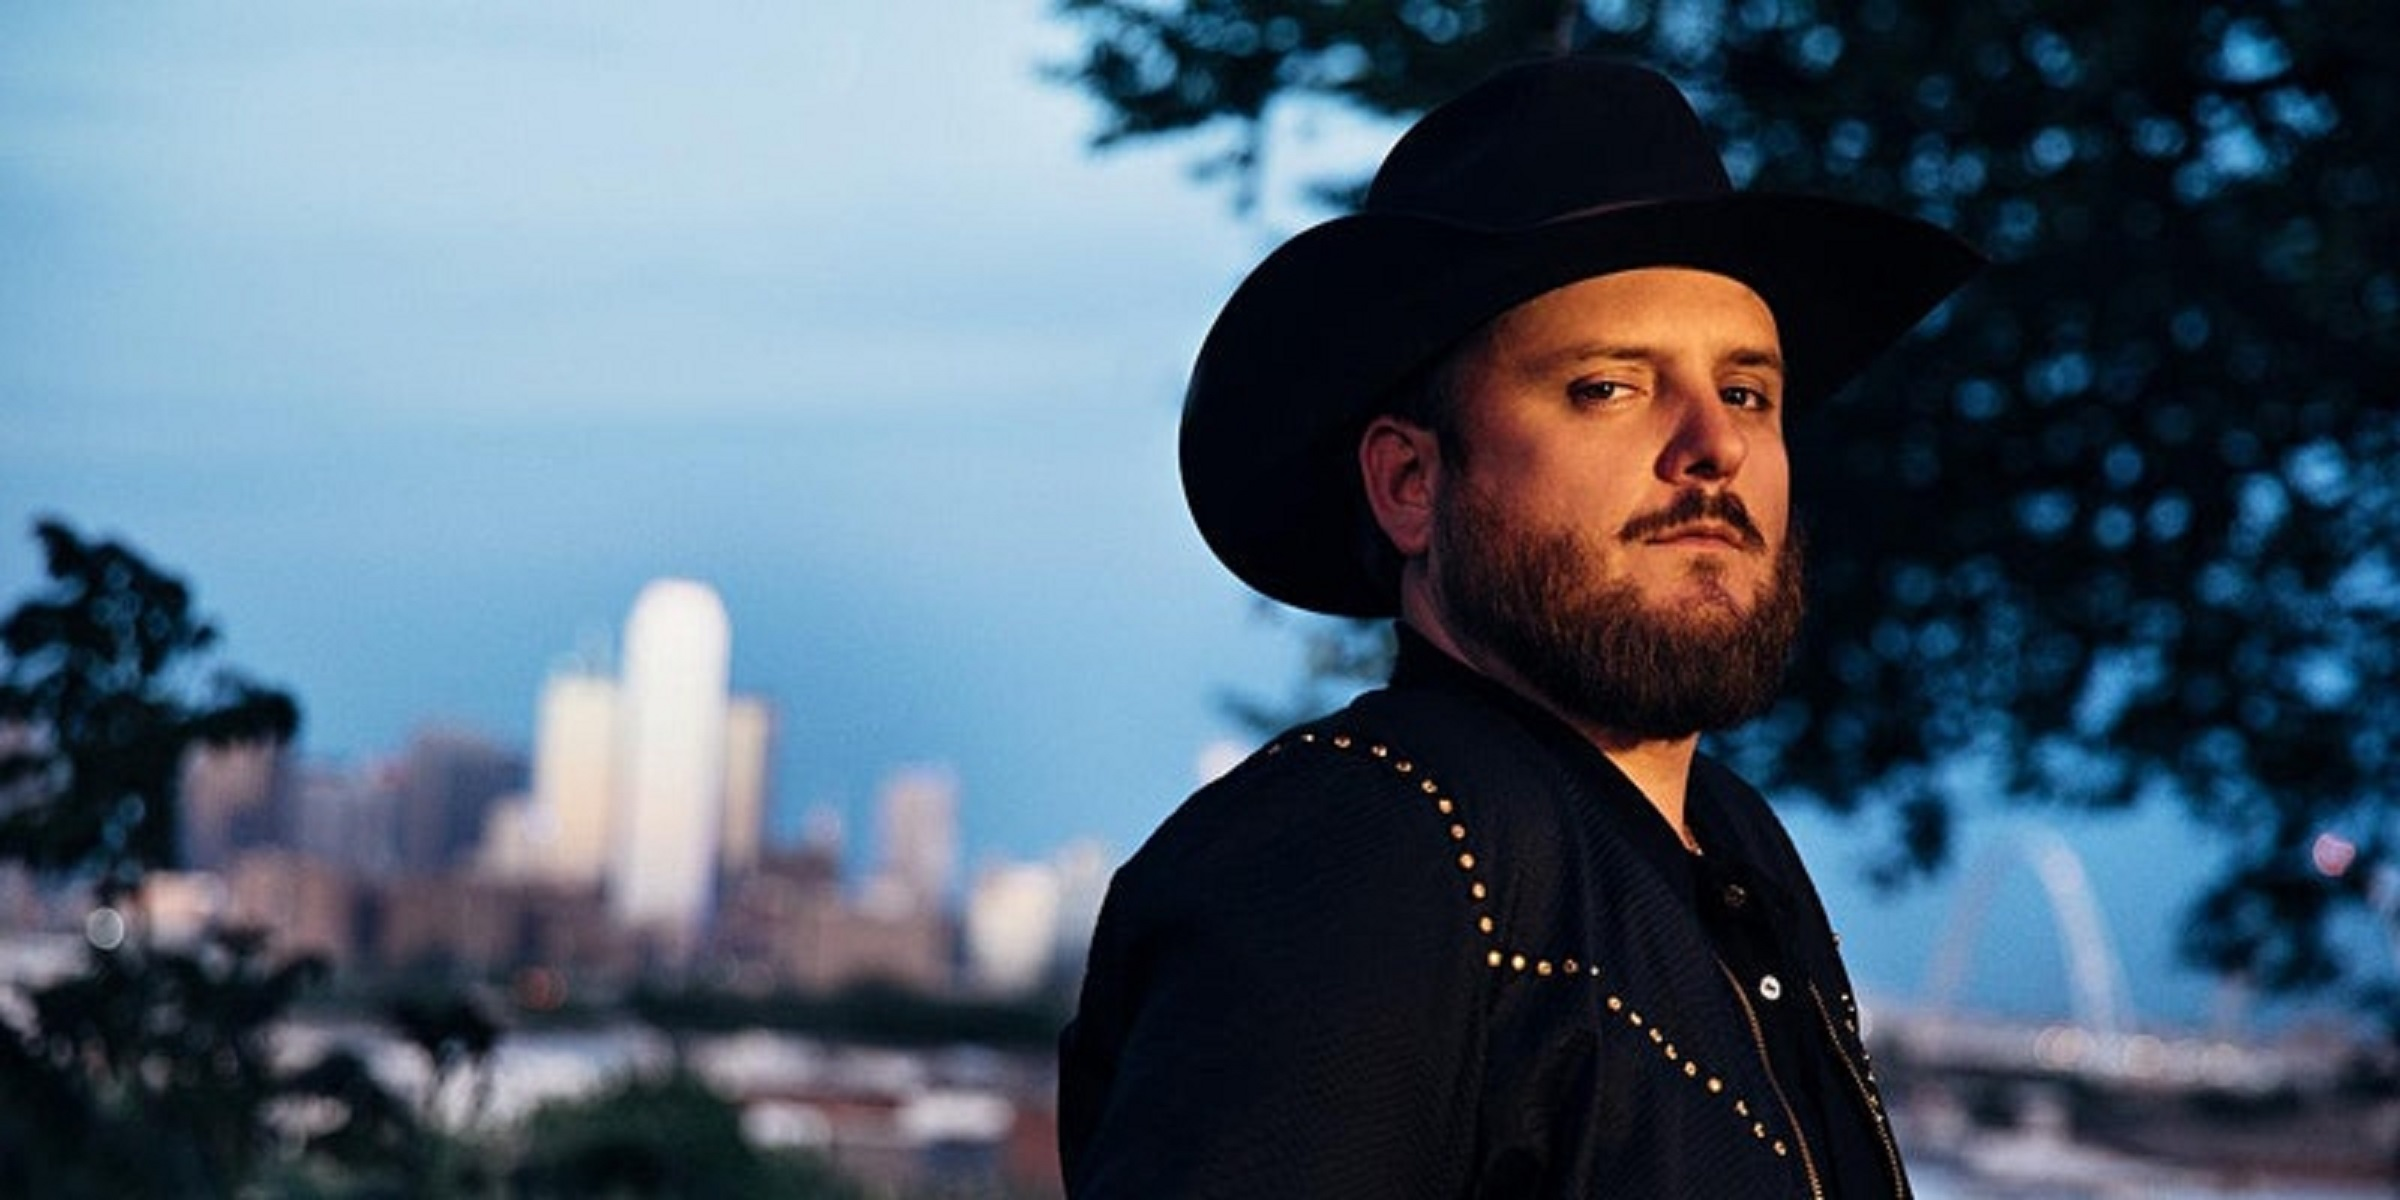 Paul Cauthen to play Boulder Theater March 21st